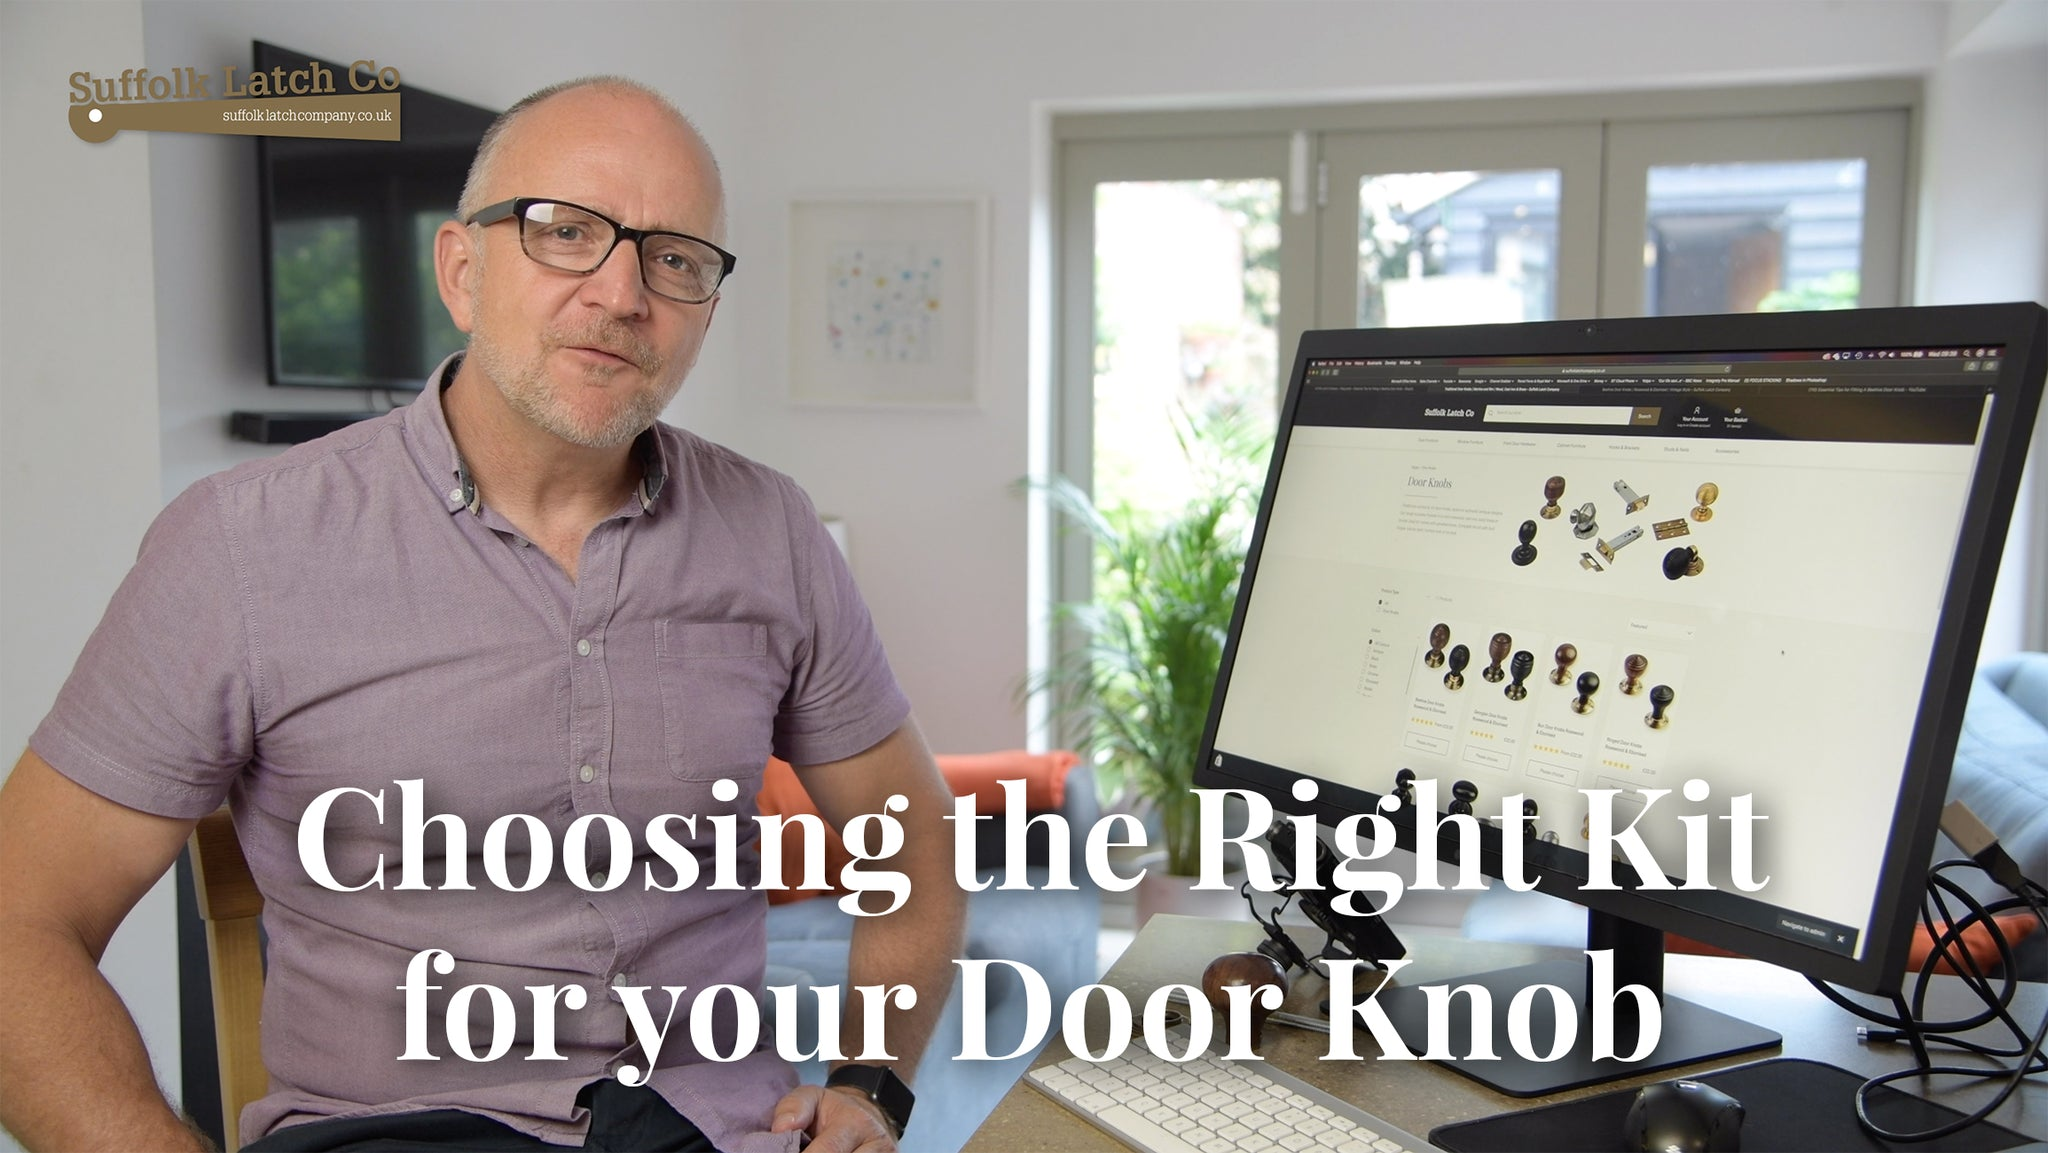 Video Guide: Choosing the Right Kit for your Door Knob